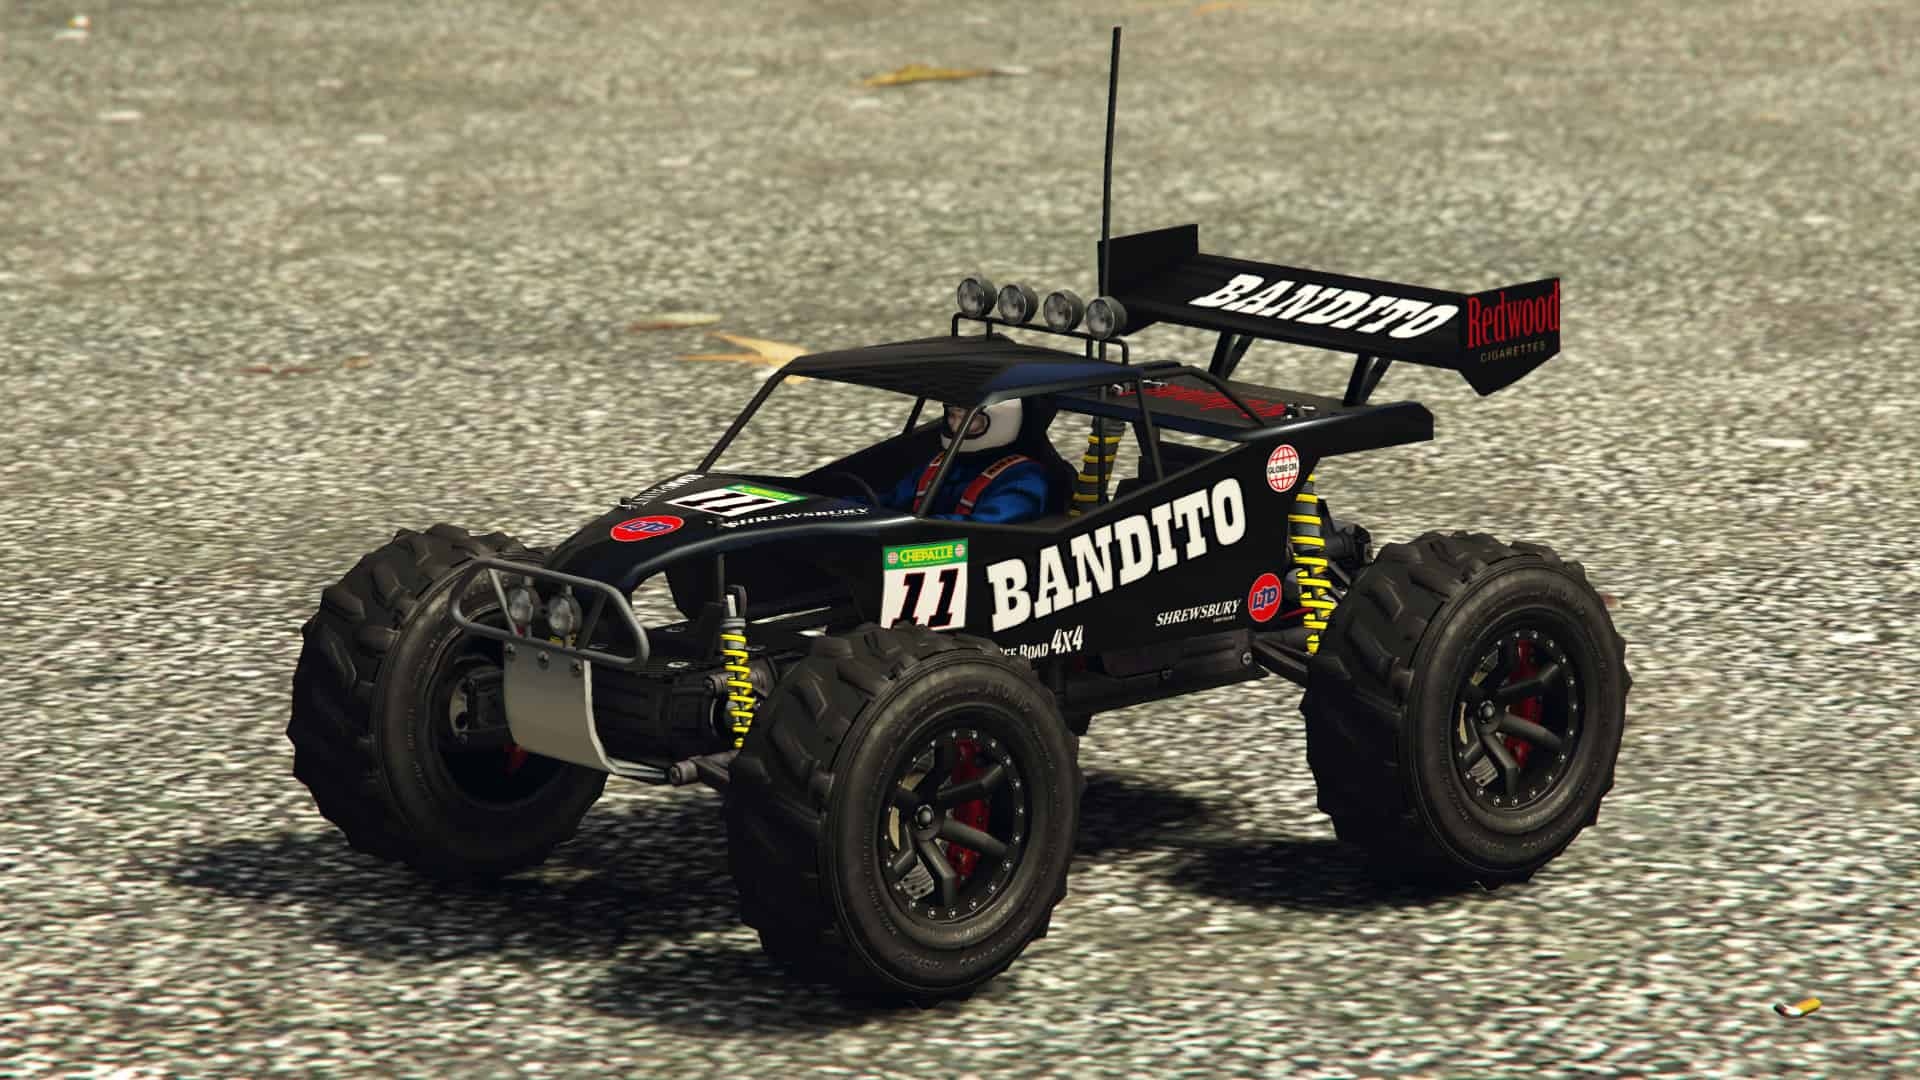 GTA Online Goes Small With The New RC Bandito - GTA BOOM